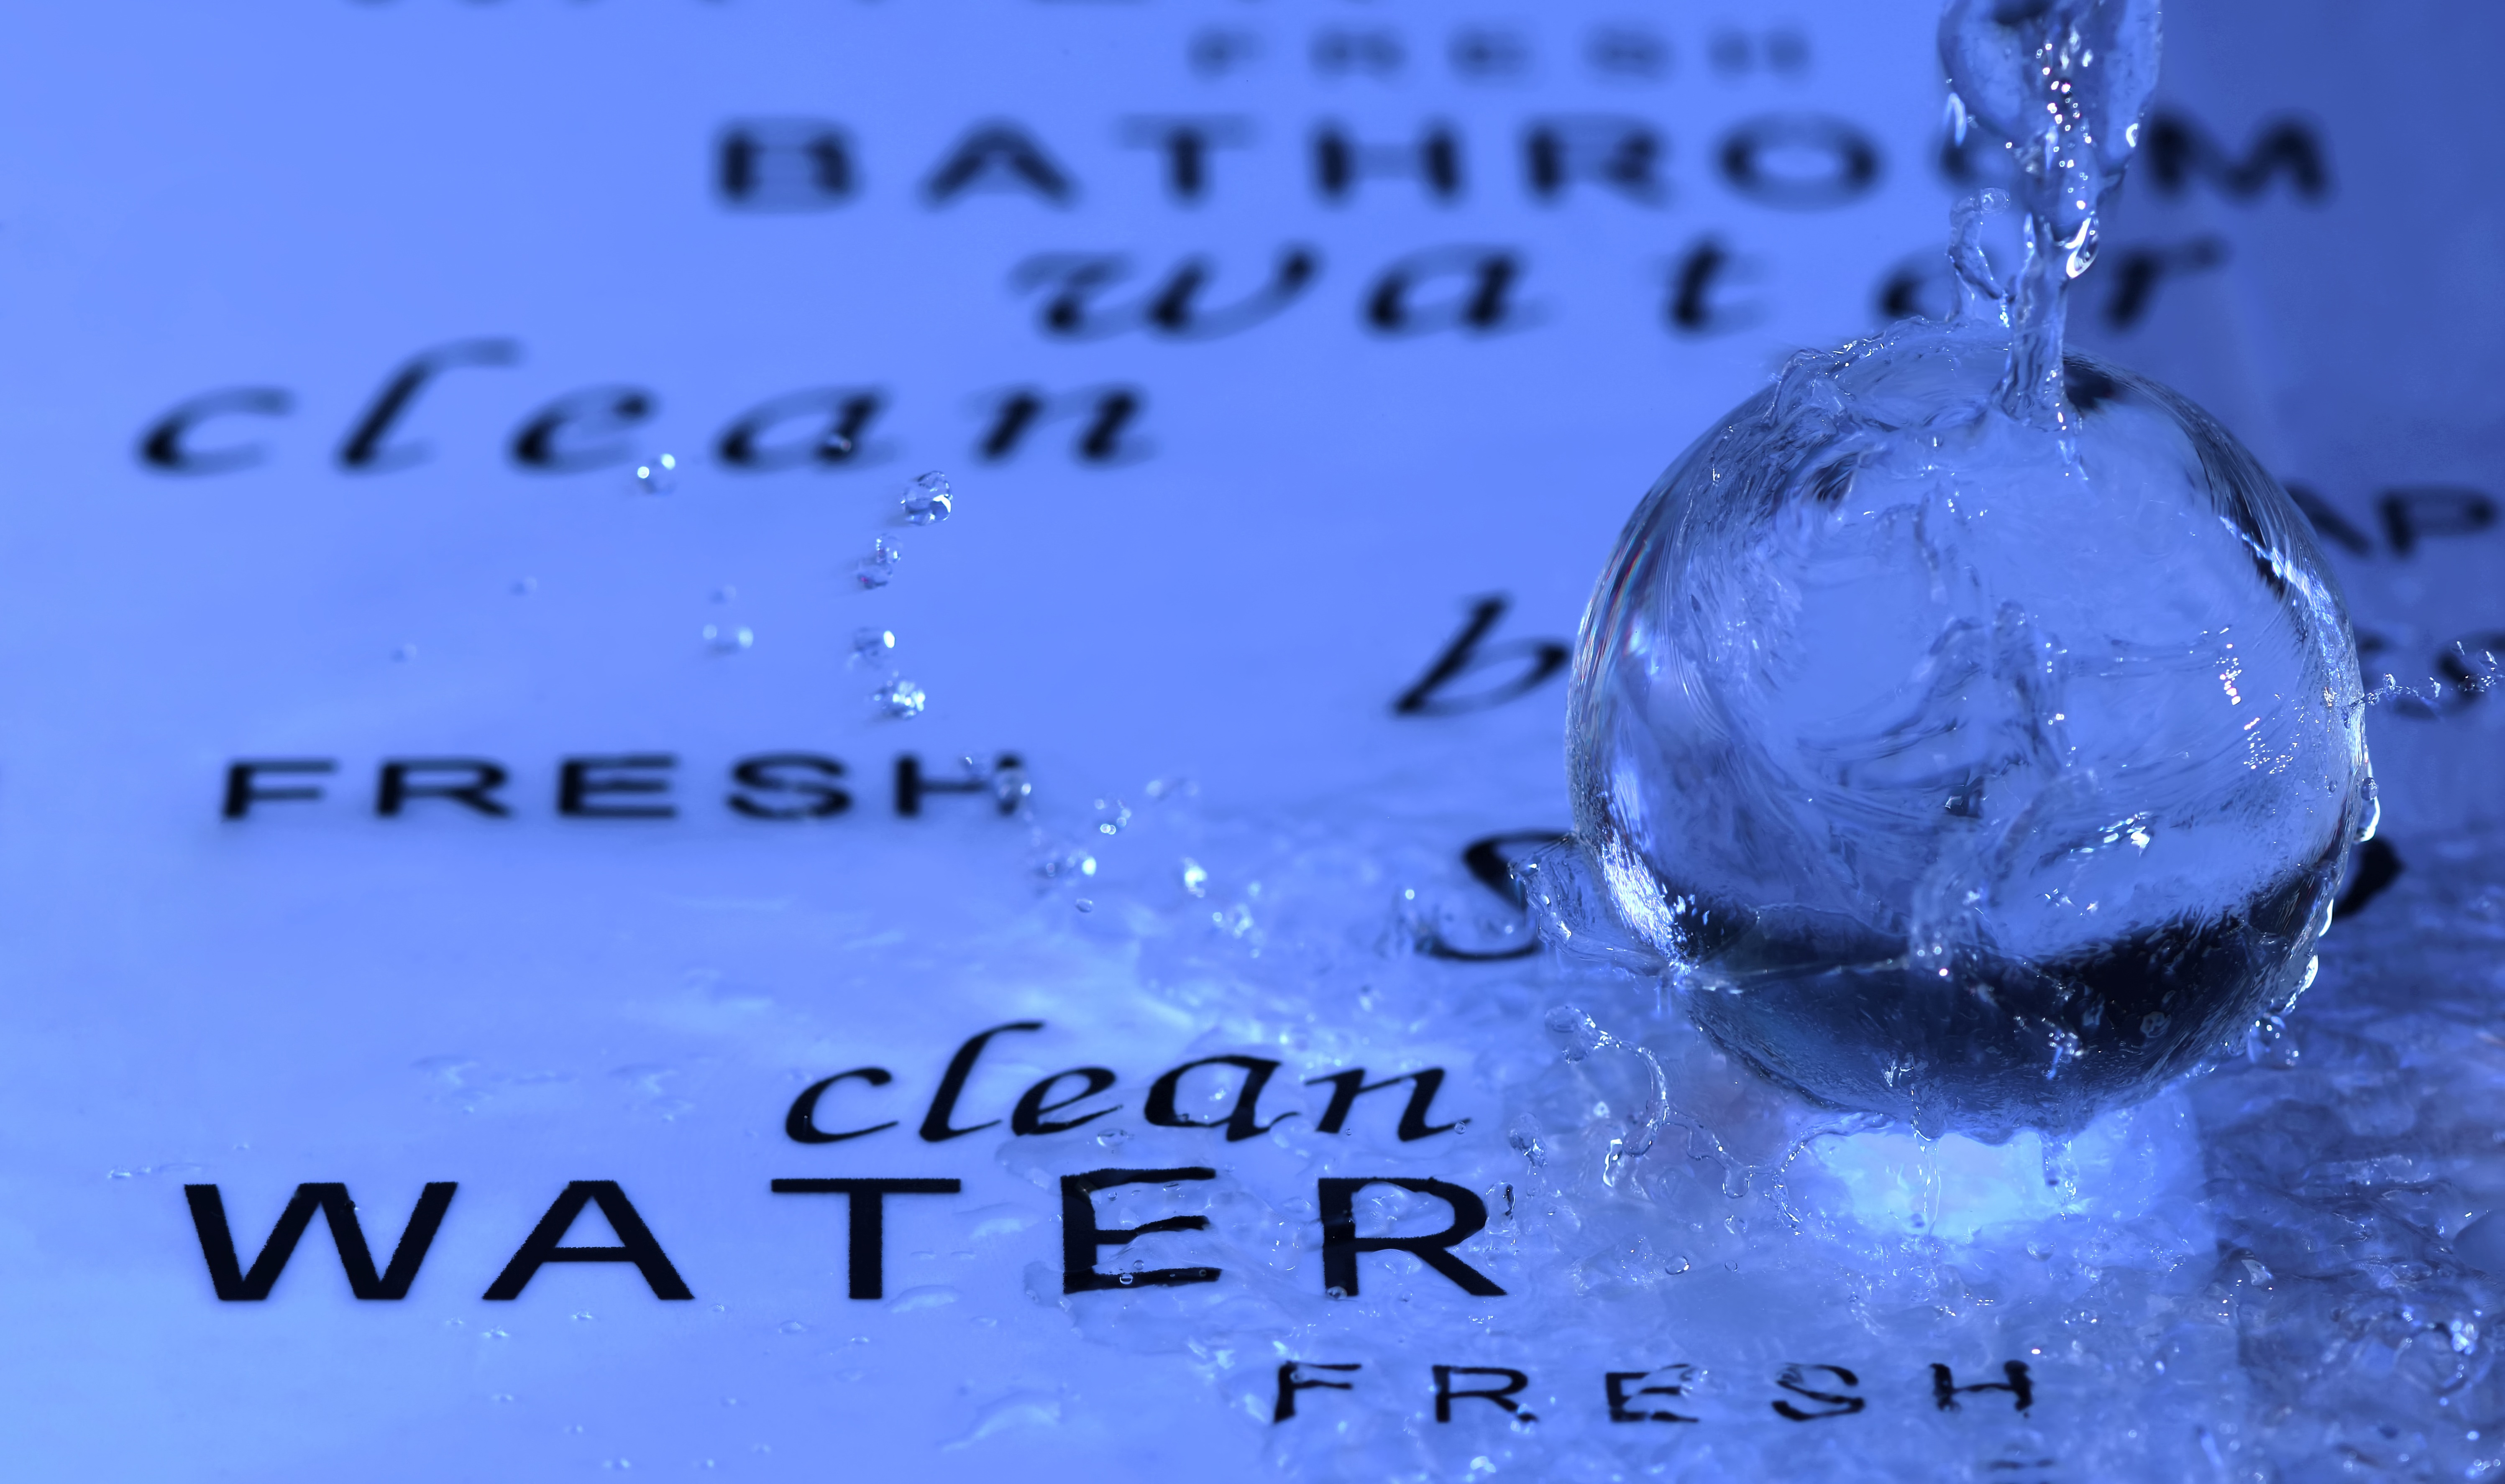 water, clear, wet, spray, inject,